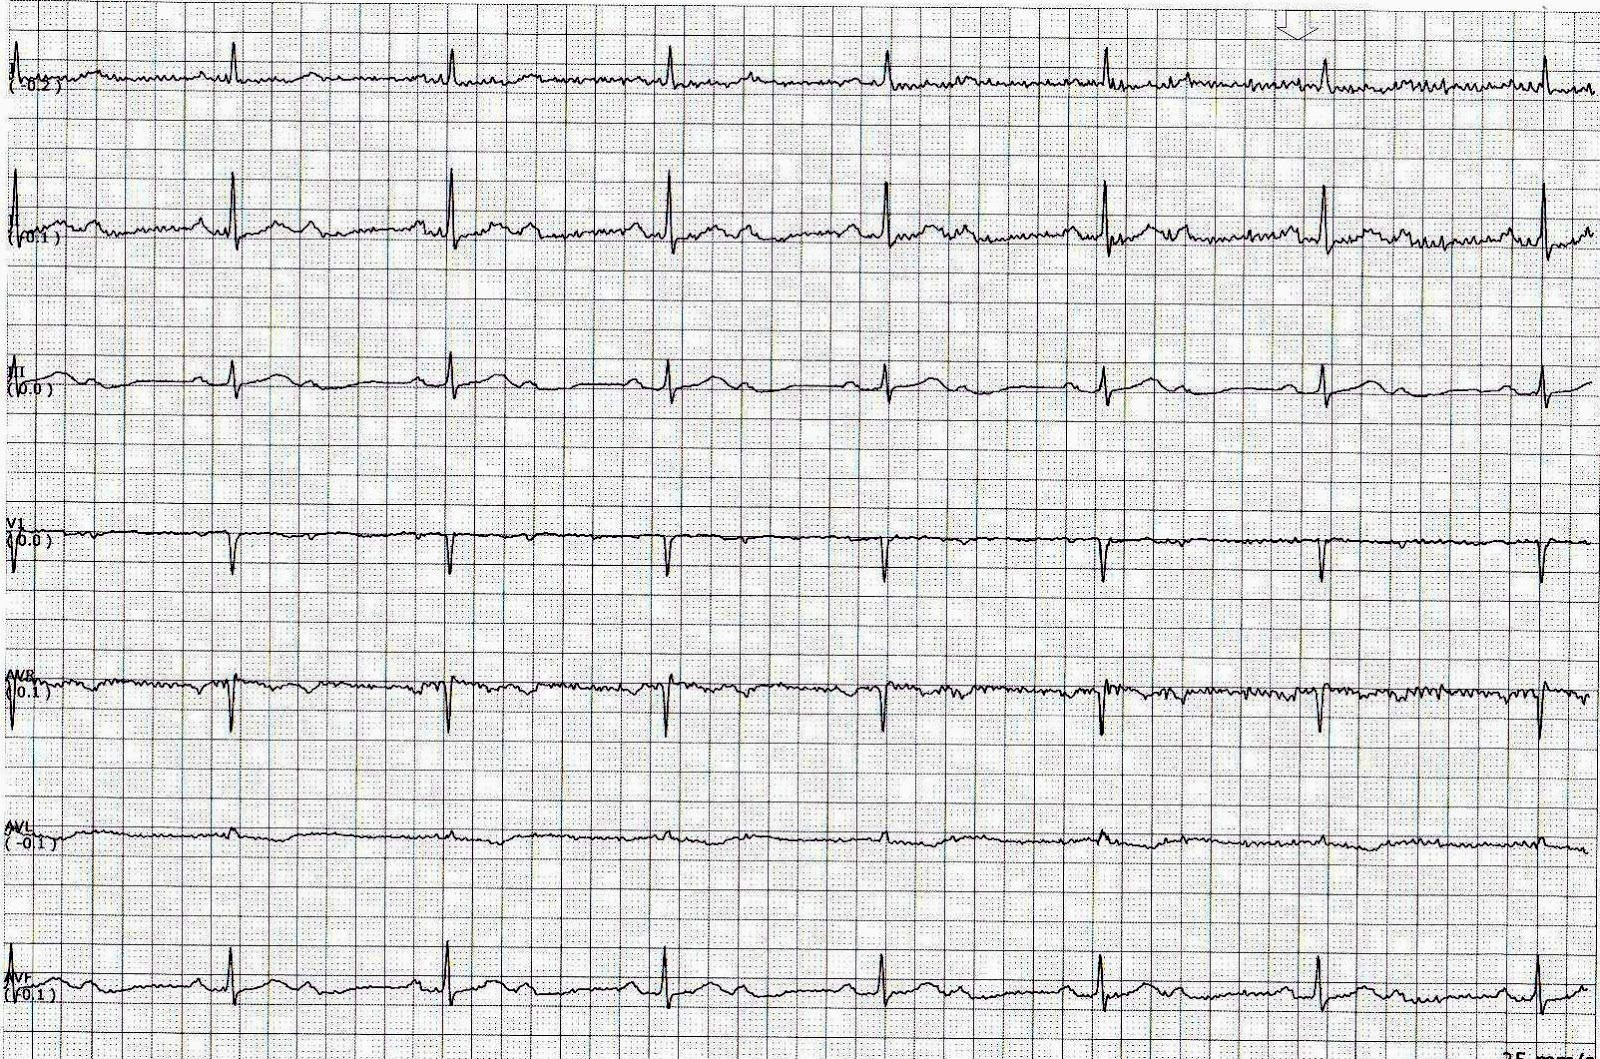 ecg rhythms av block a subtype of second degree av block 2 1 av block a subtype of second degree av block